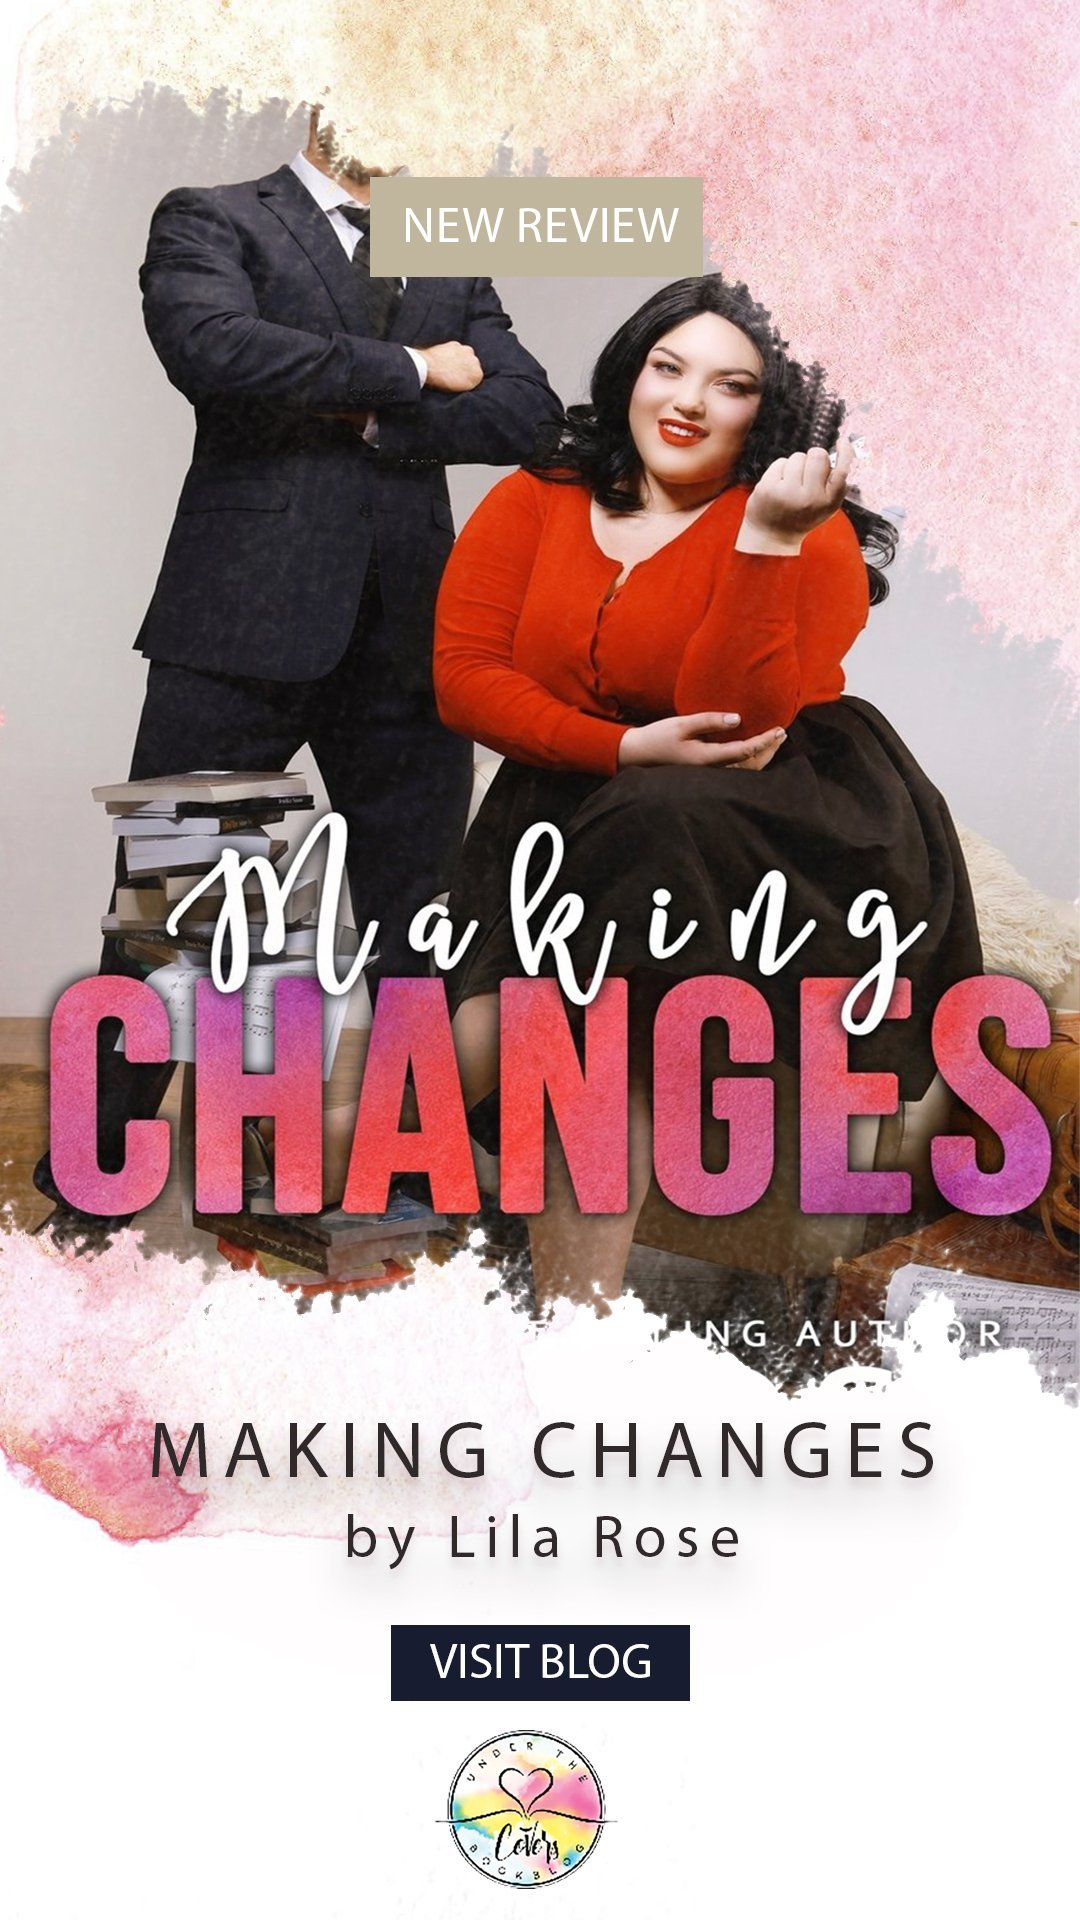 Review: Making Changes by Lila Rose